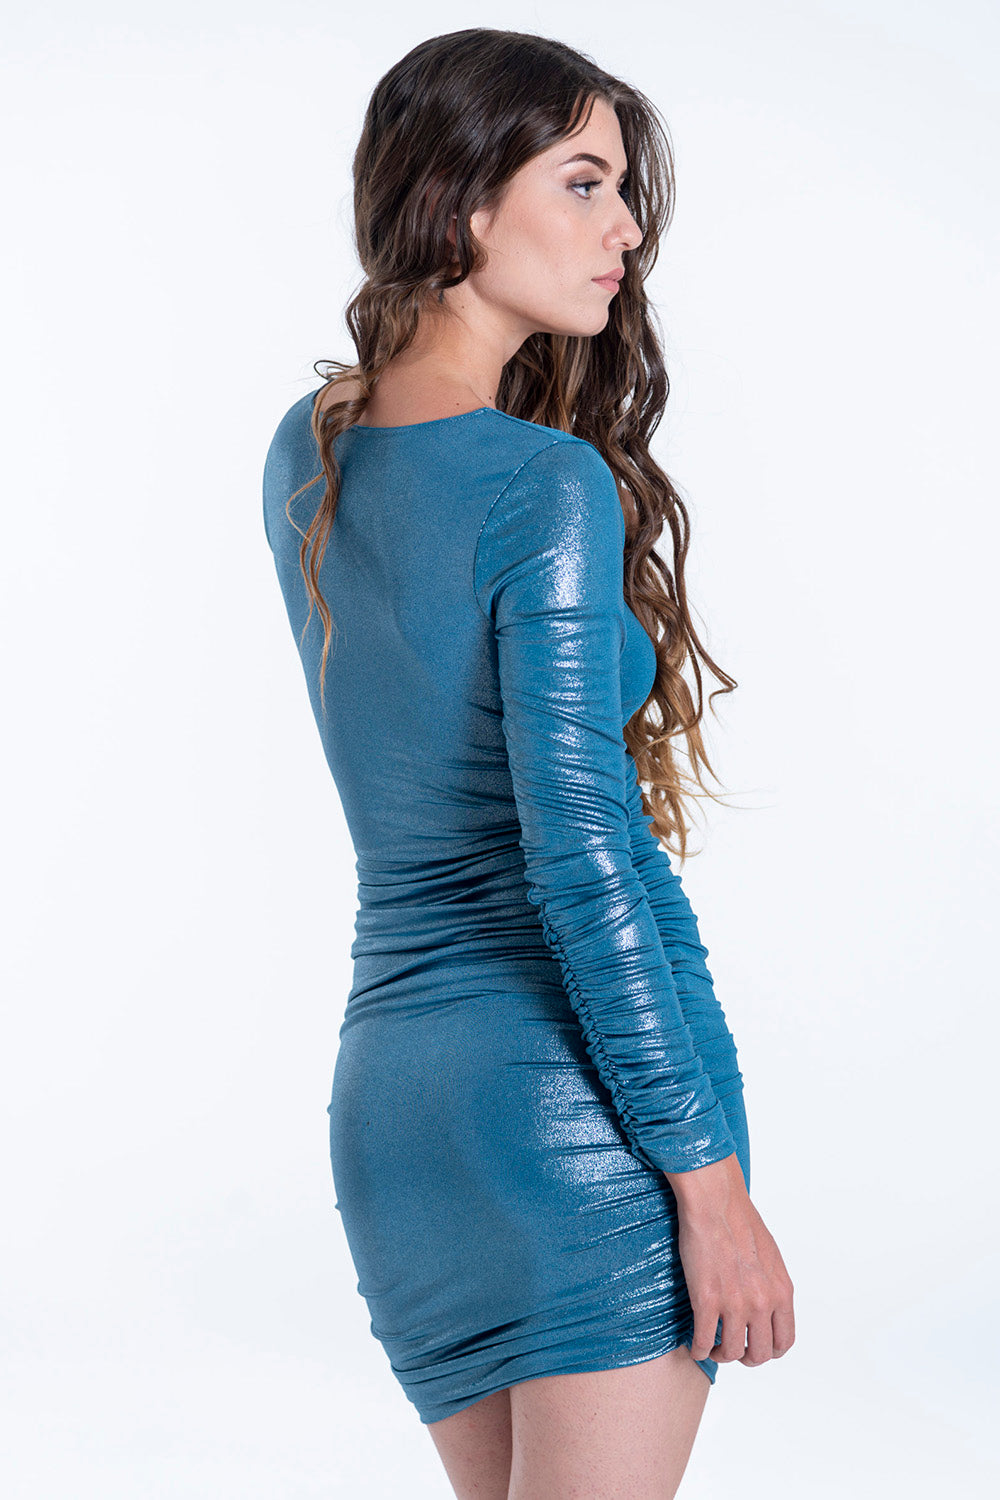 Bojo metallic dress with ruched side and sleeves